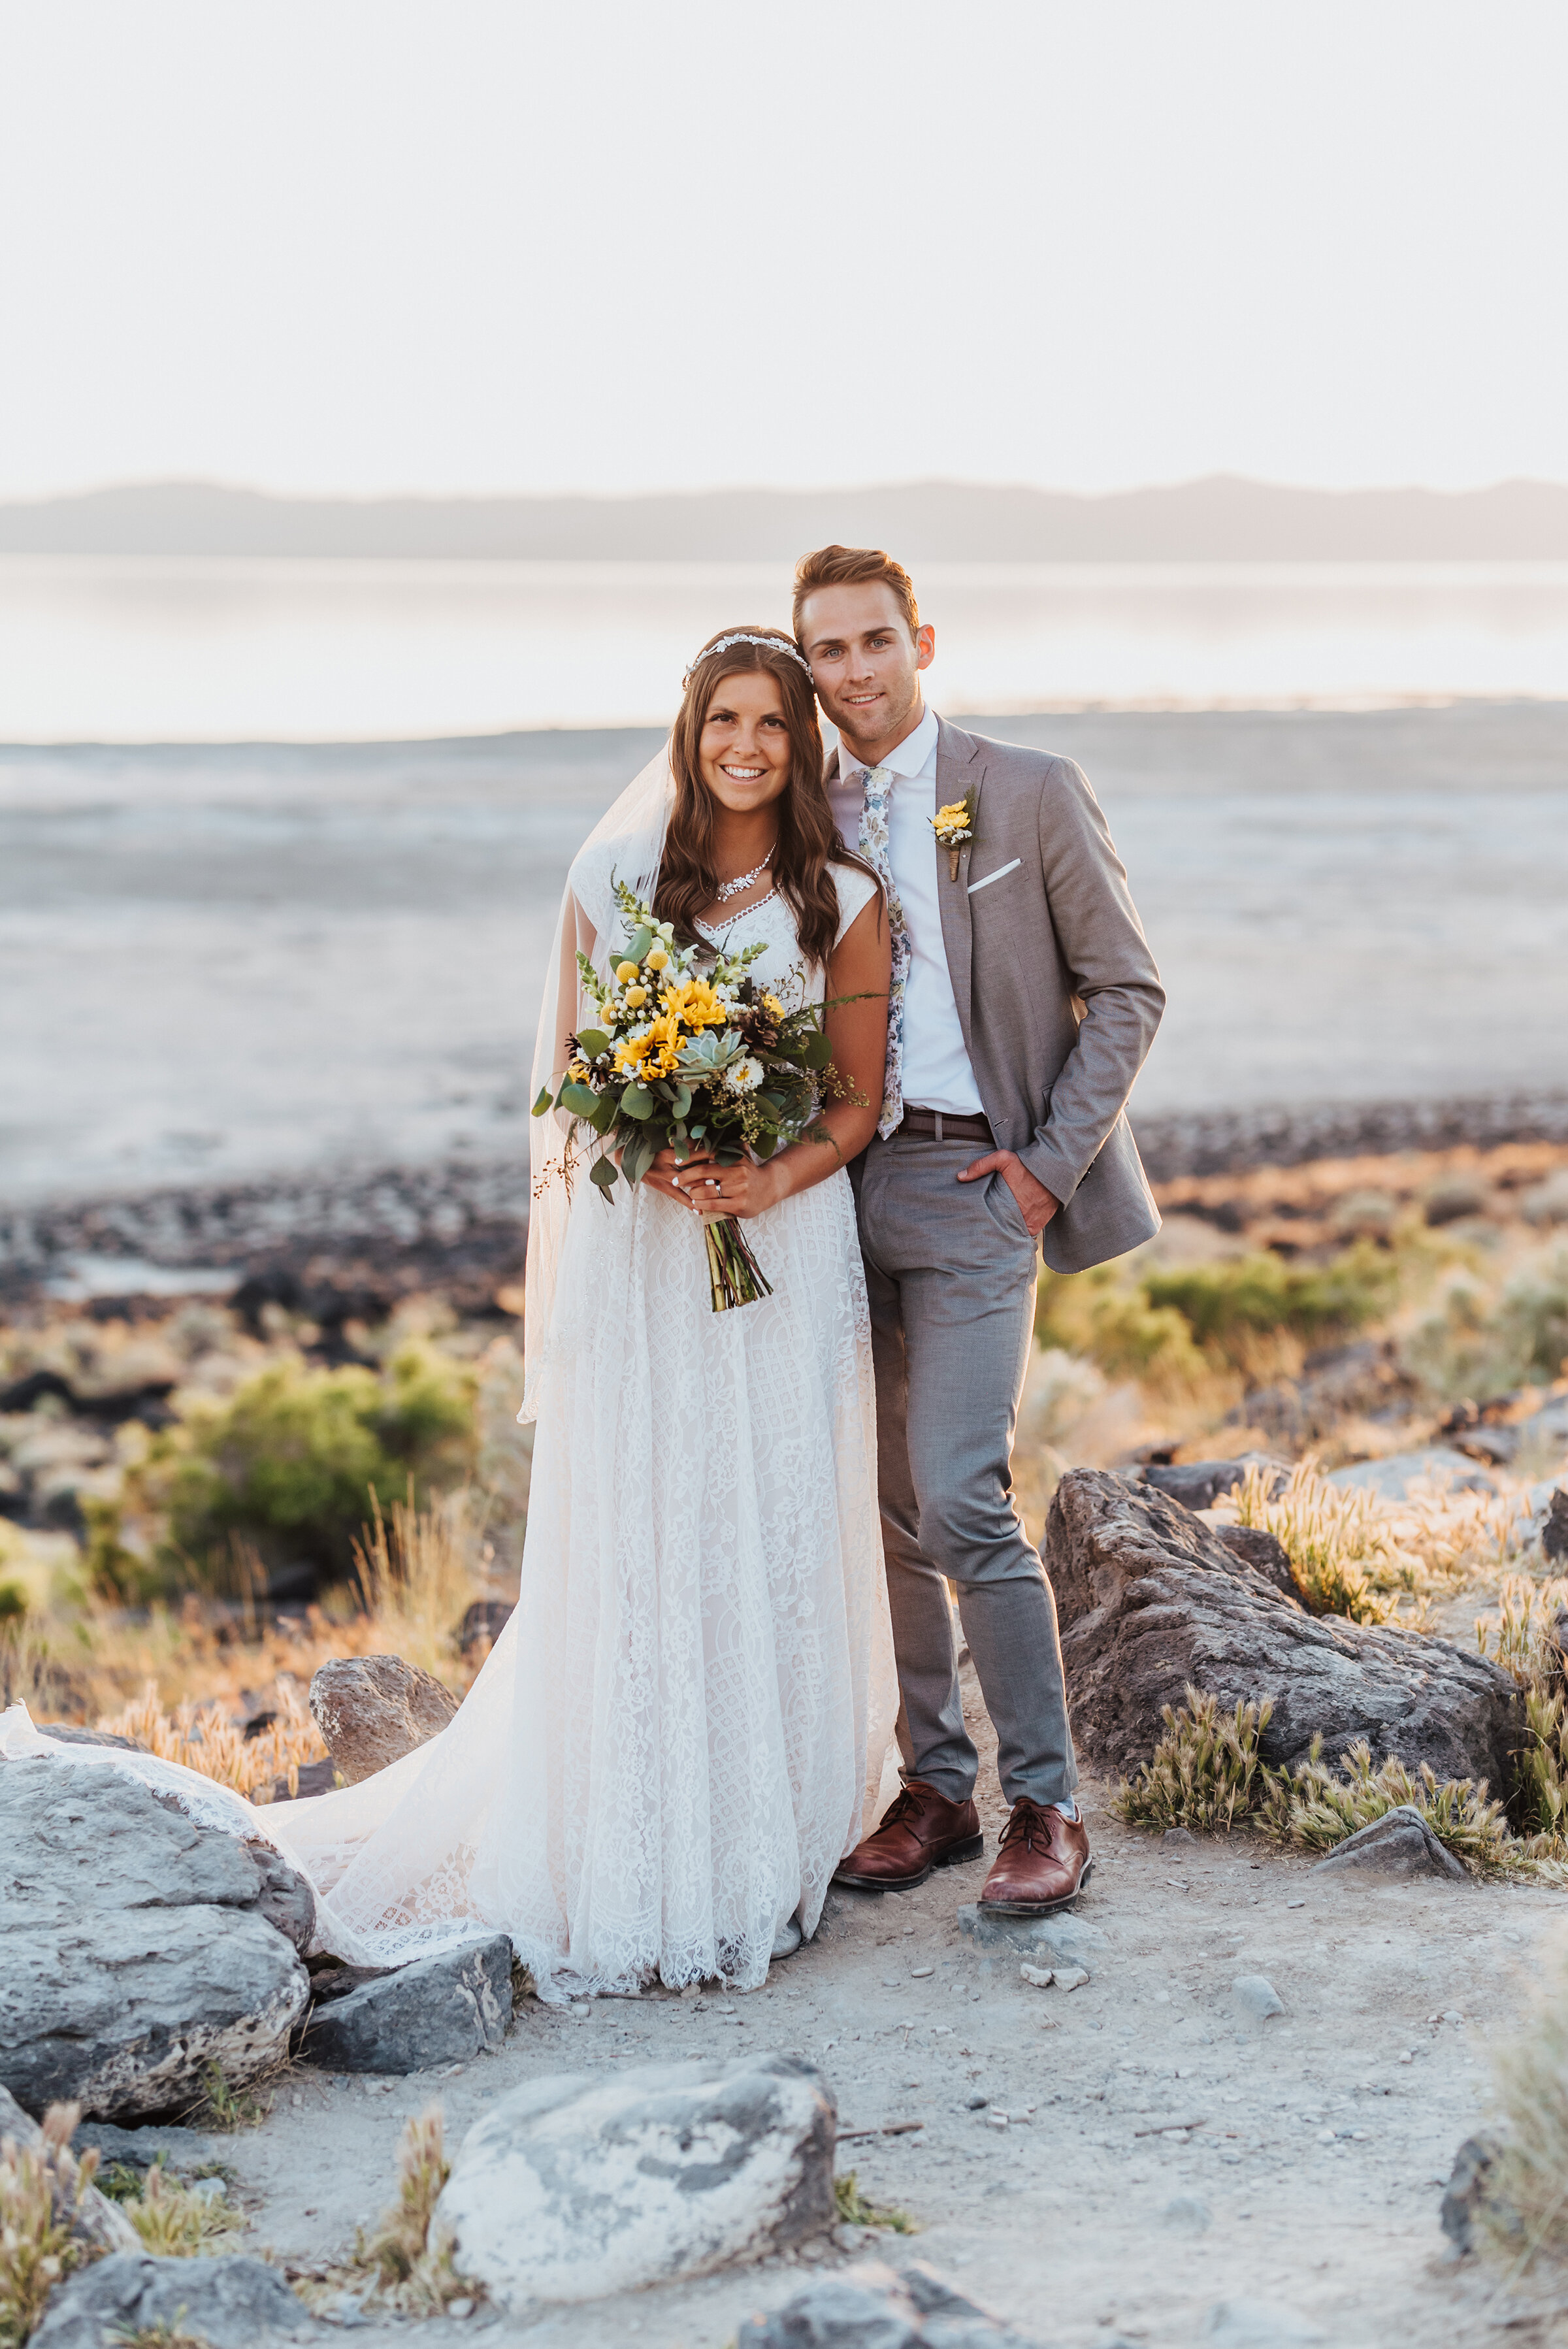 Smiling portrait photo of the bride and groom at the Great Salt Lake Spiral Jetty with bright yellow sunflowers in the brides bouquet. #spiraljetty #GreatSaltLake #formalsession #SaltFlats #sunsetphotosession #NorthernUtah #weddingphotographer #formalphotographer #brideandgroom #outdoorformals #weddingformalphotography